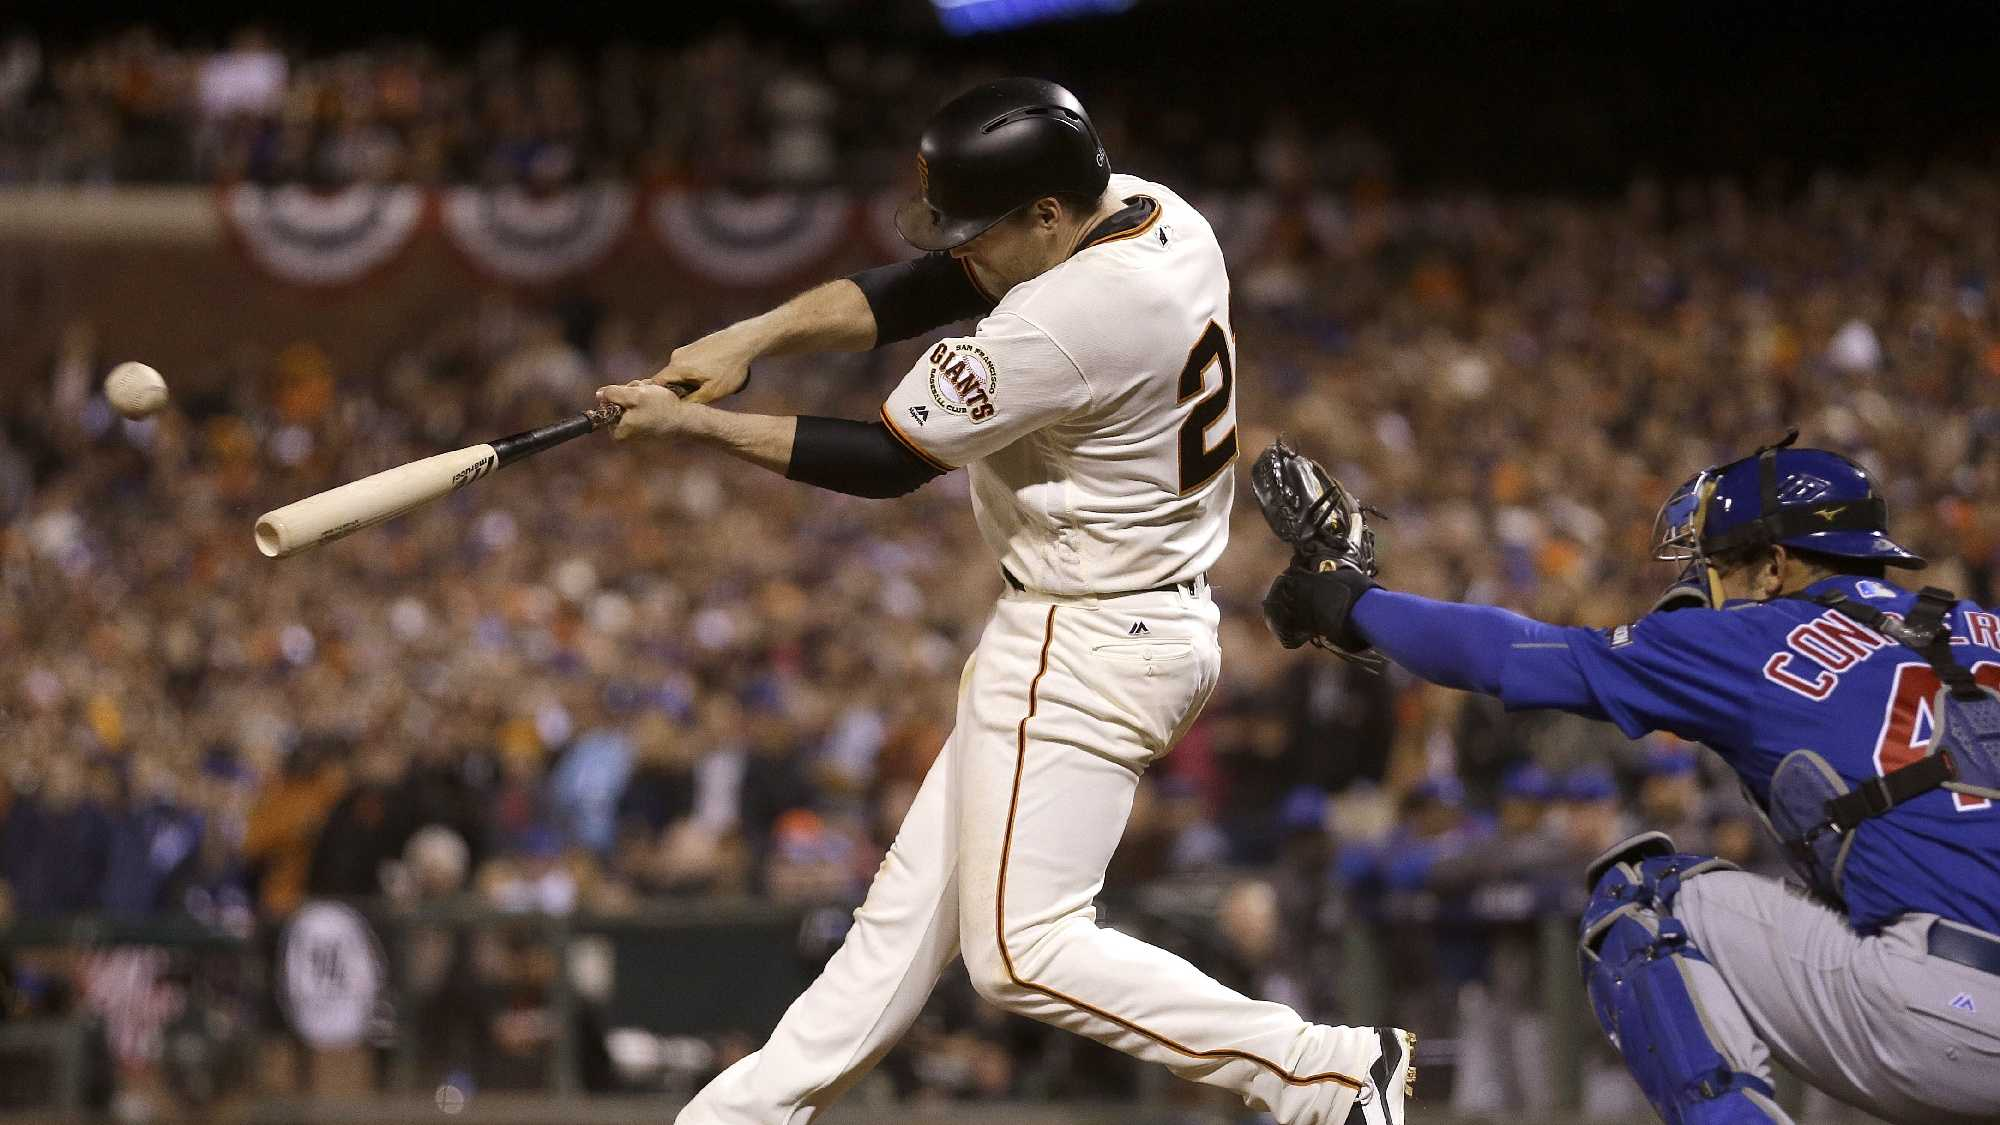 San Francisco Giants' Conor Gillaspie, left, hits a two-run triple in front of Chicago Cubs catcher Miguel Montero during the eighth inning of Game 3 of baseball's National League Division Series in San Francisco, Monday, Oct. 10, 2016.